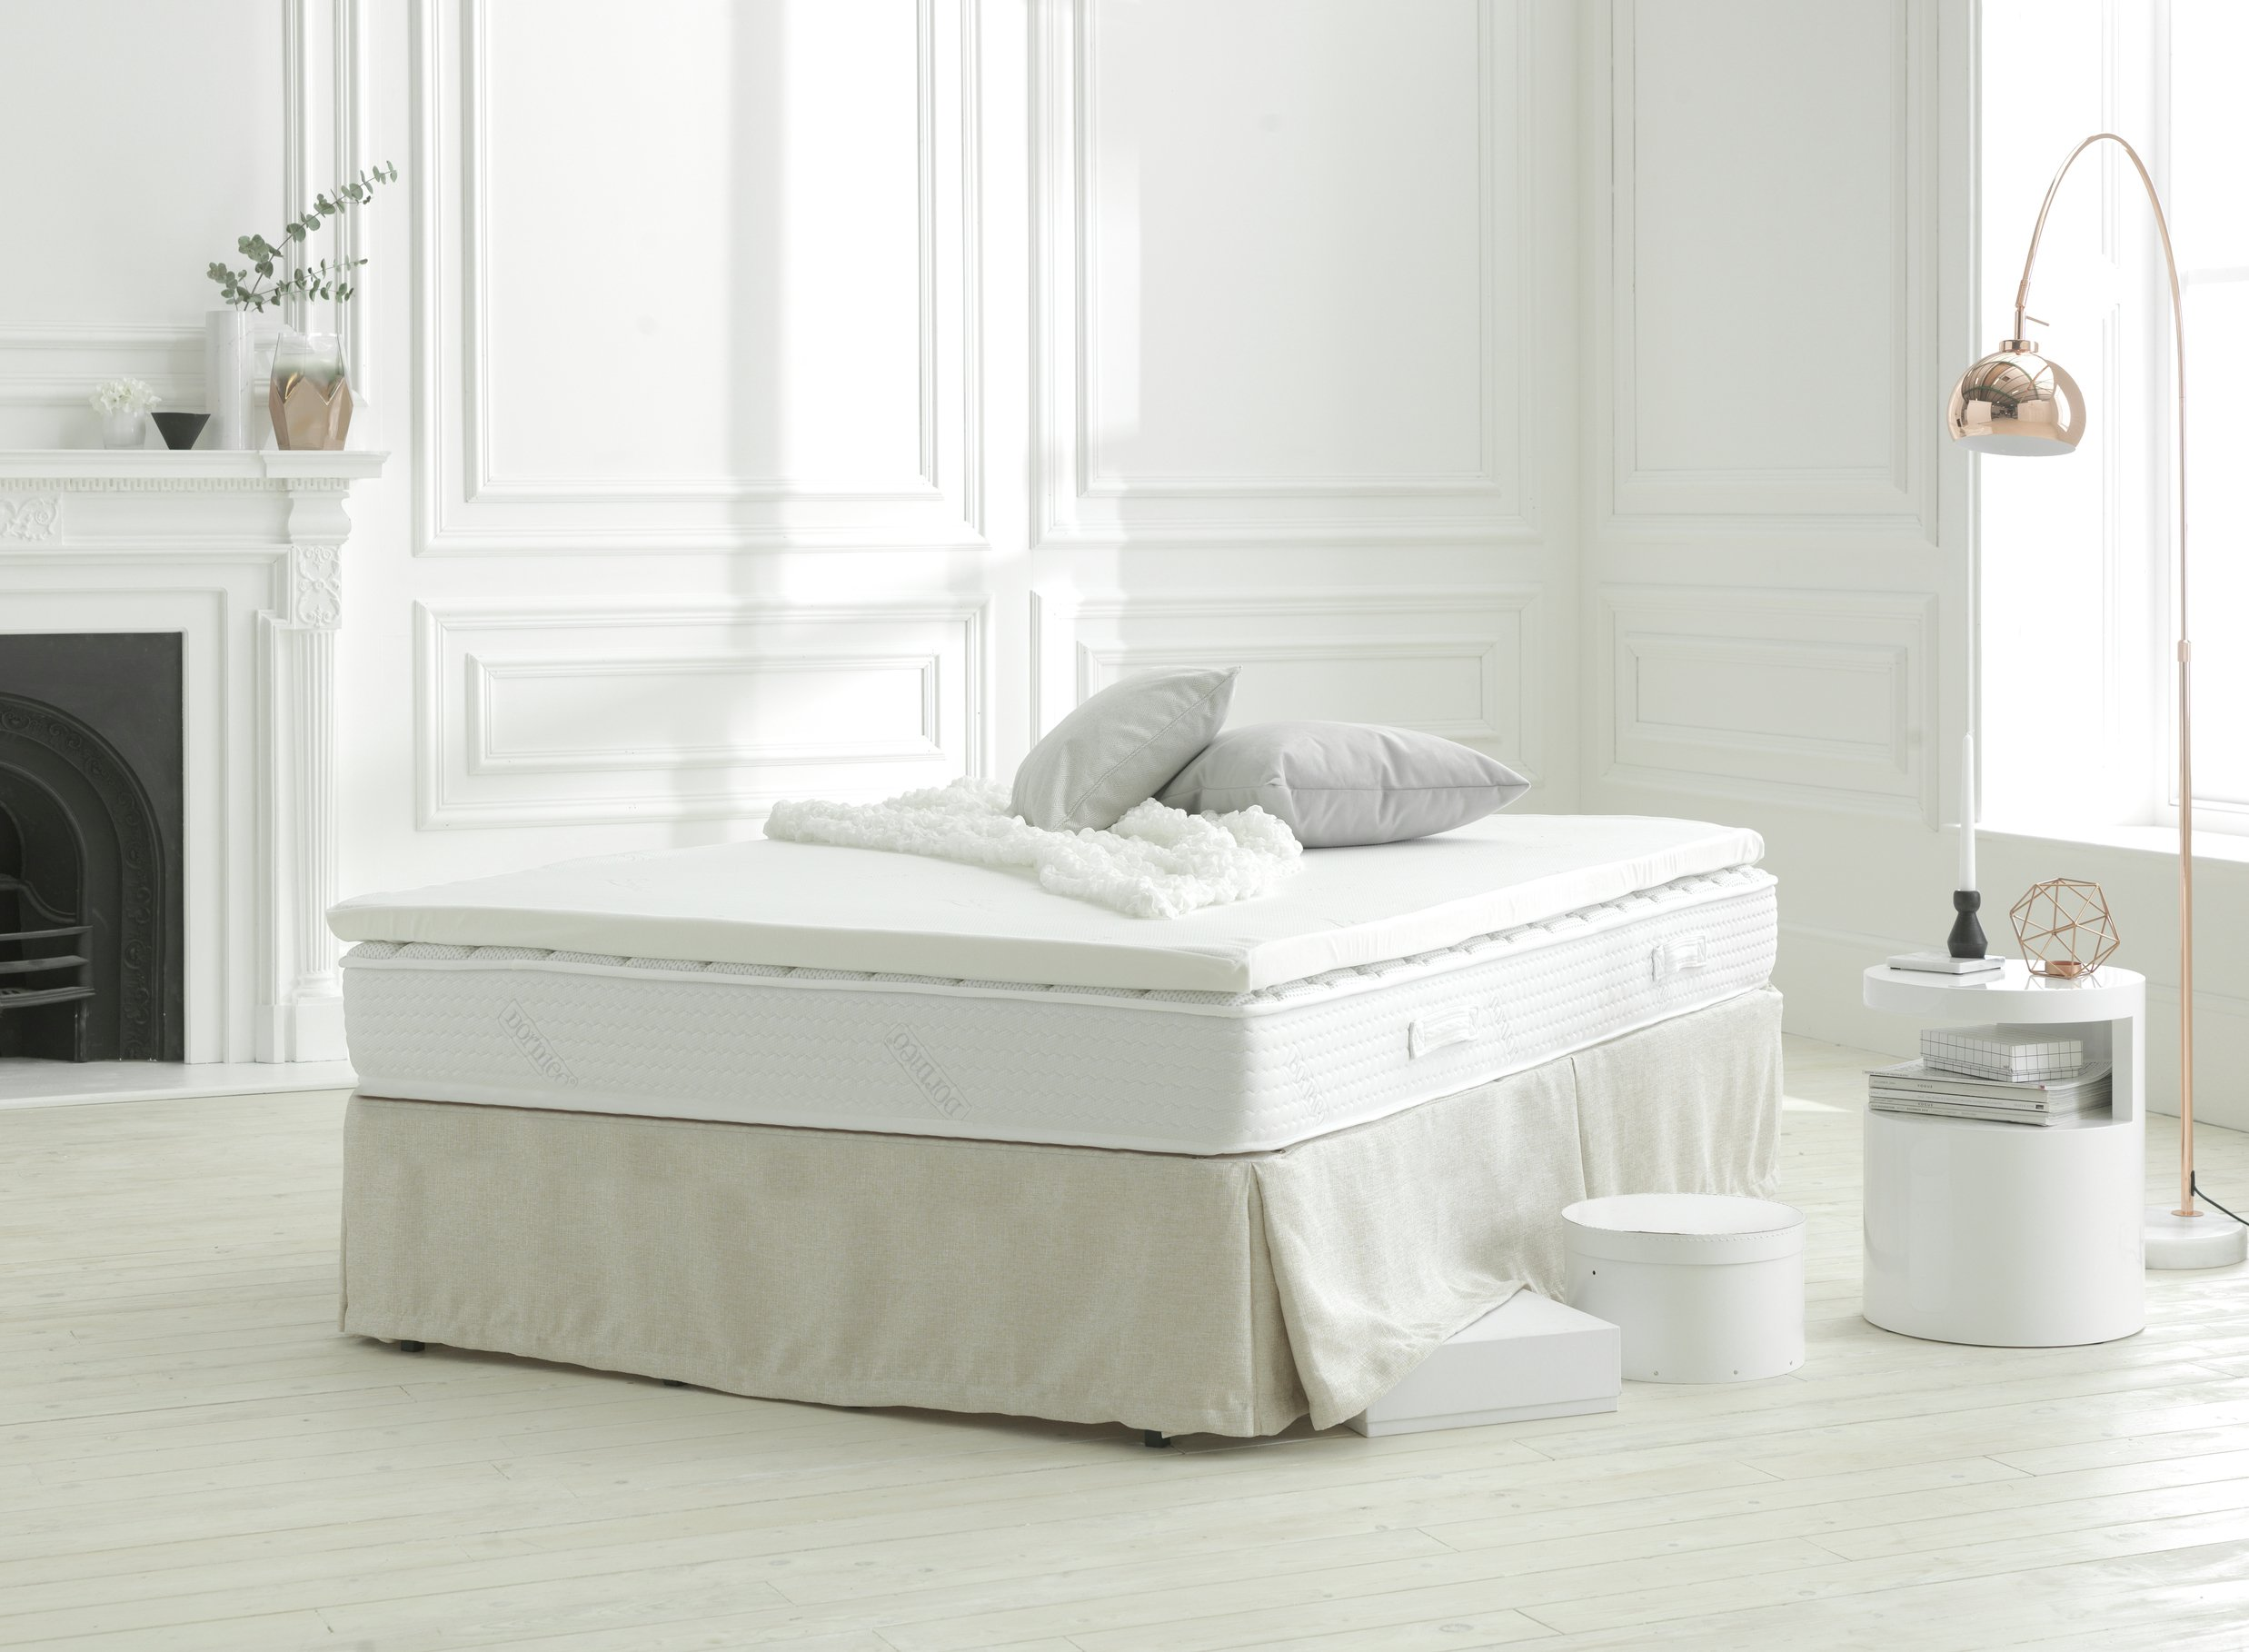 Image of Dormeo Renew Memory Mattress Topper - Kingsize